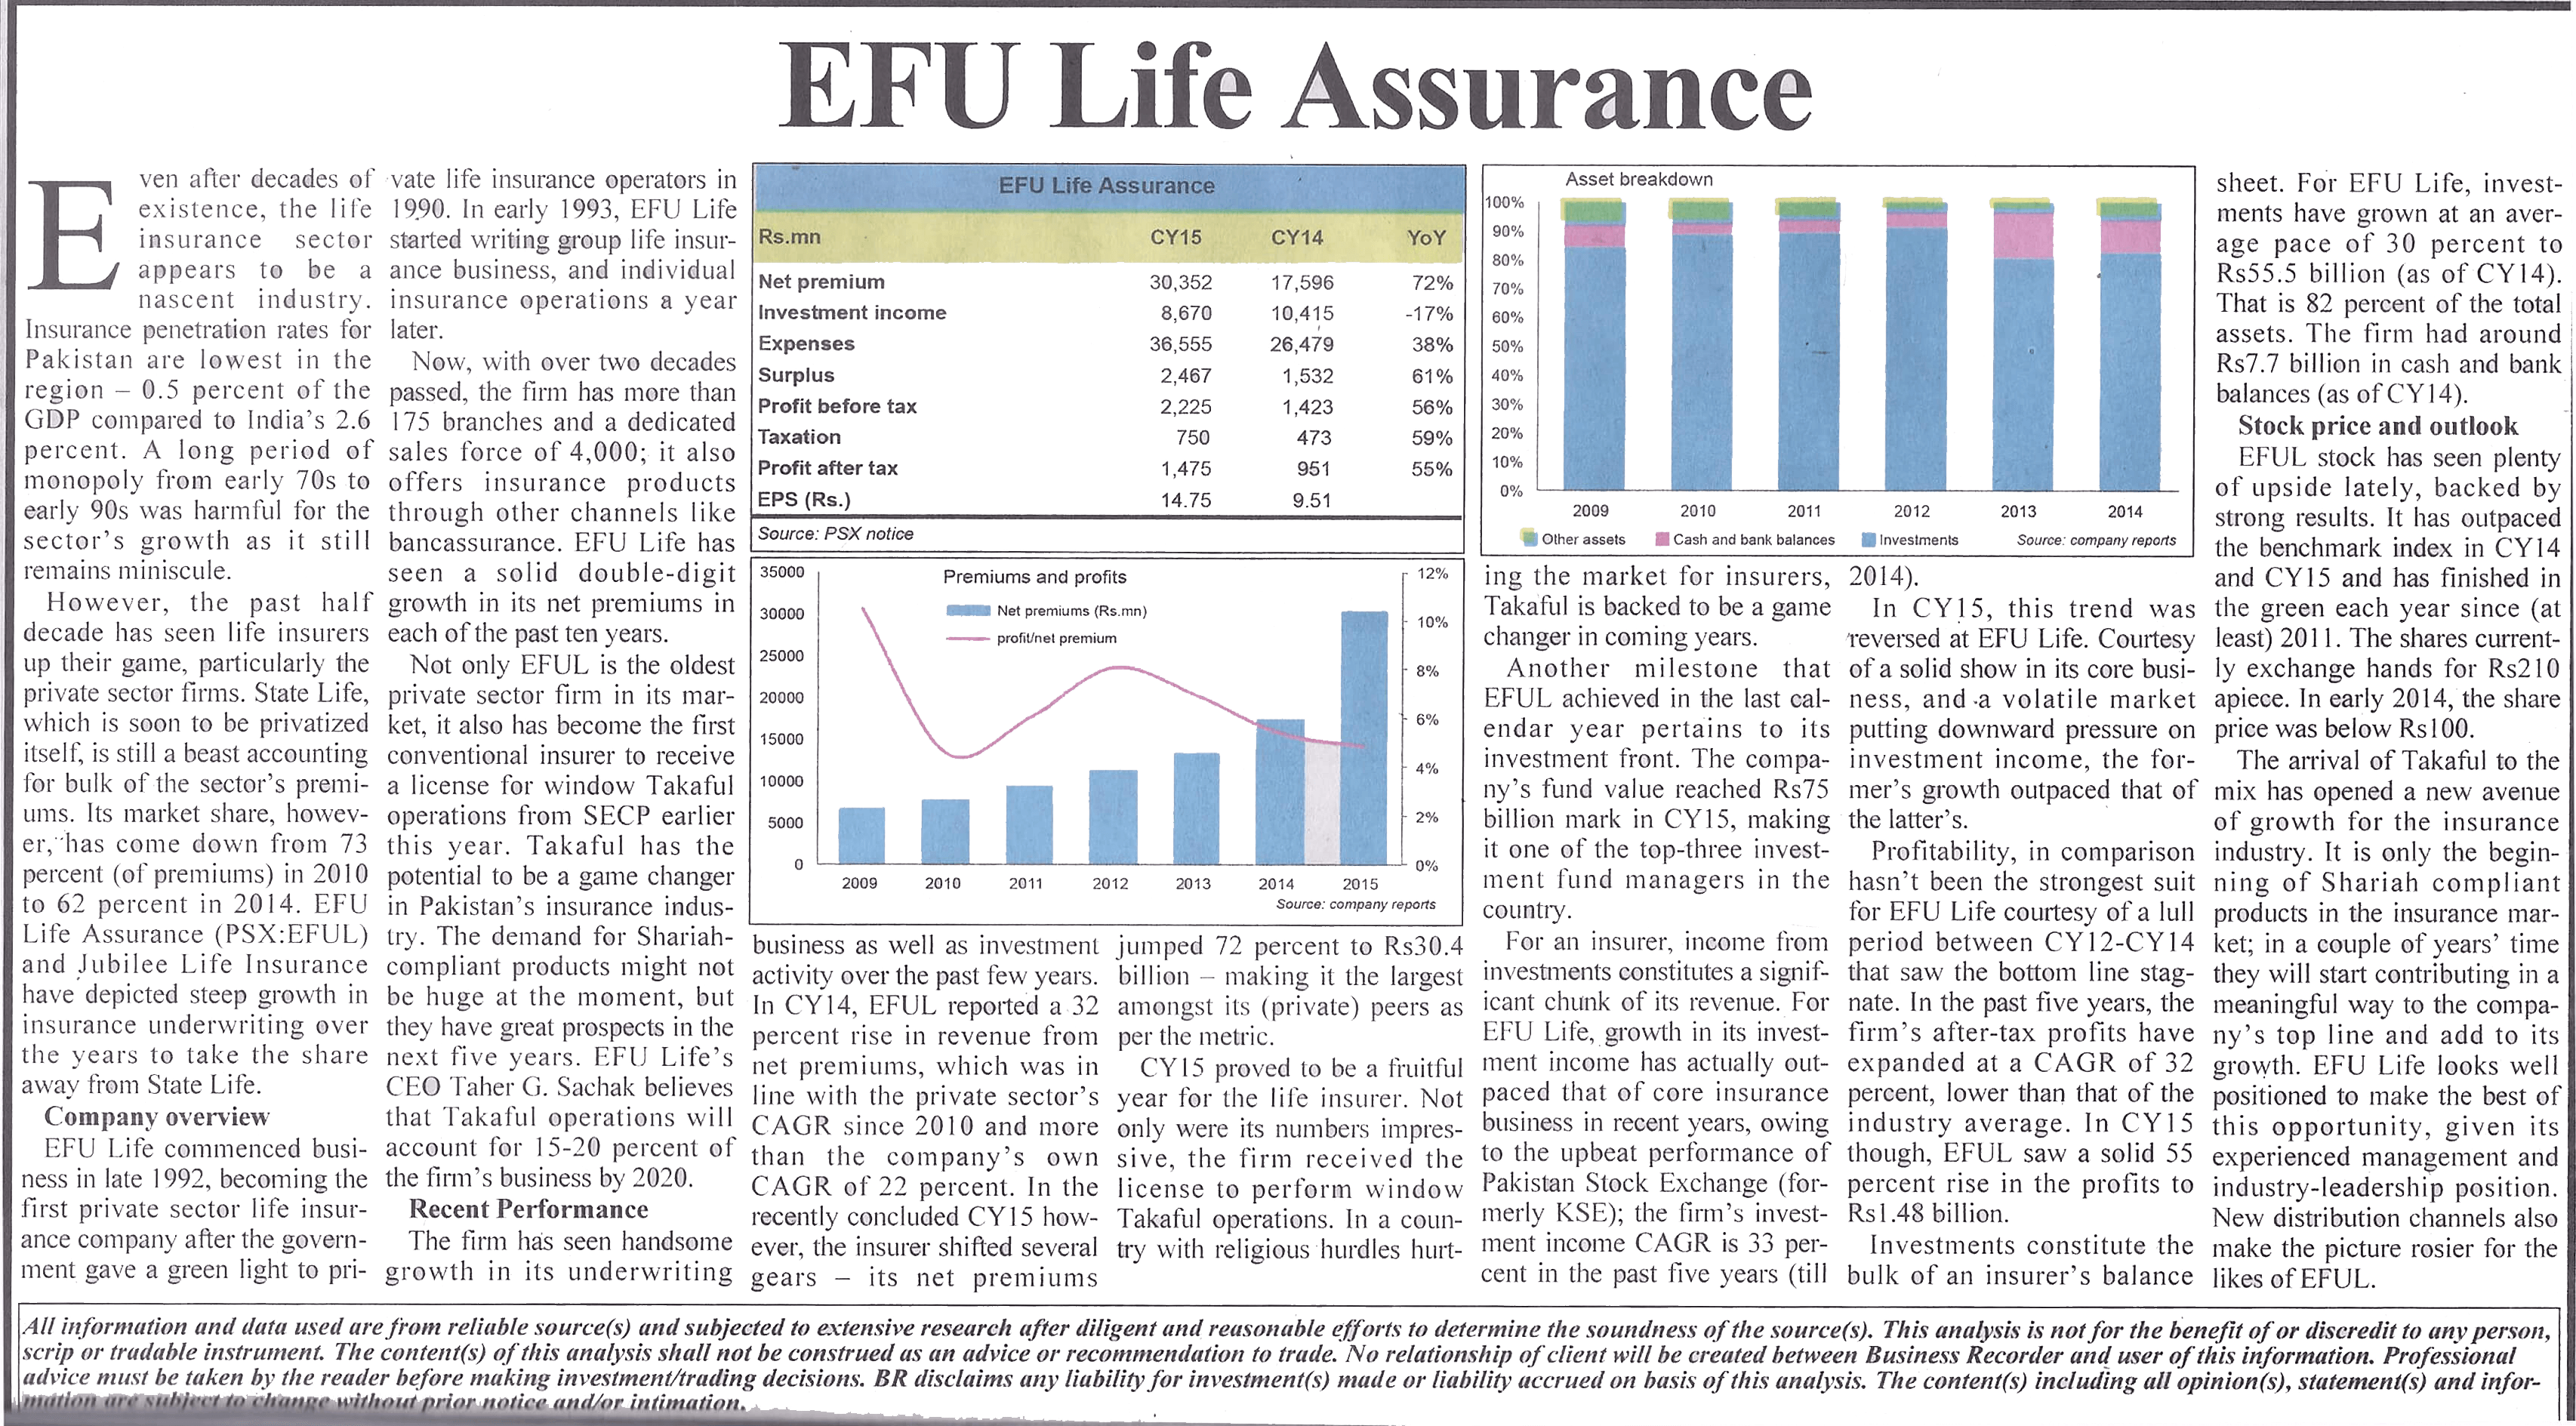 A report on EFU Life's Outstanding Business Performance in Business Recorder